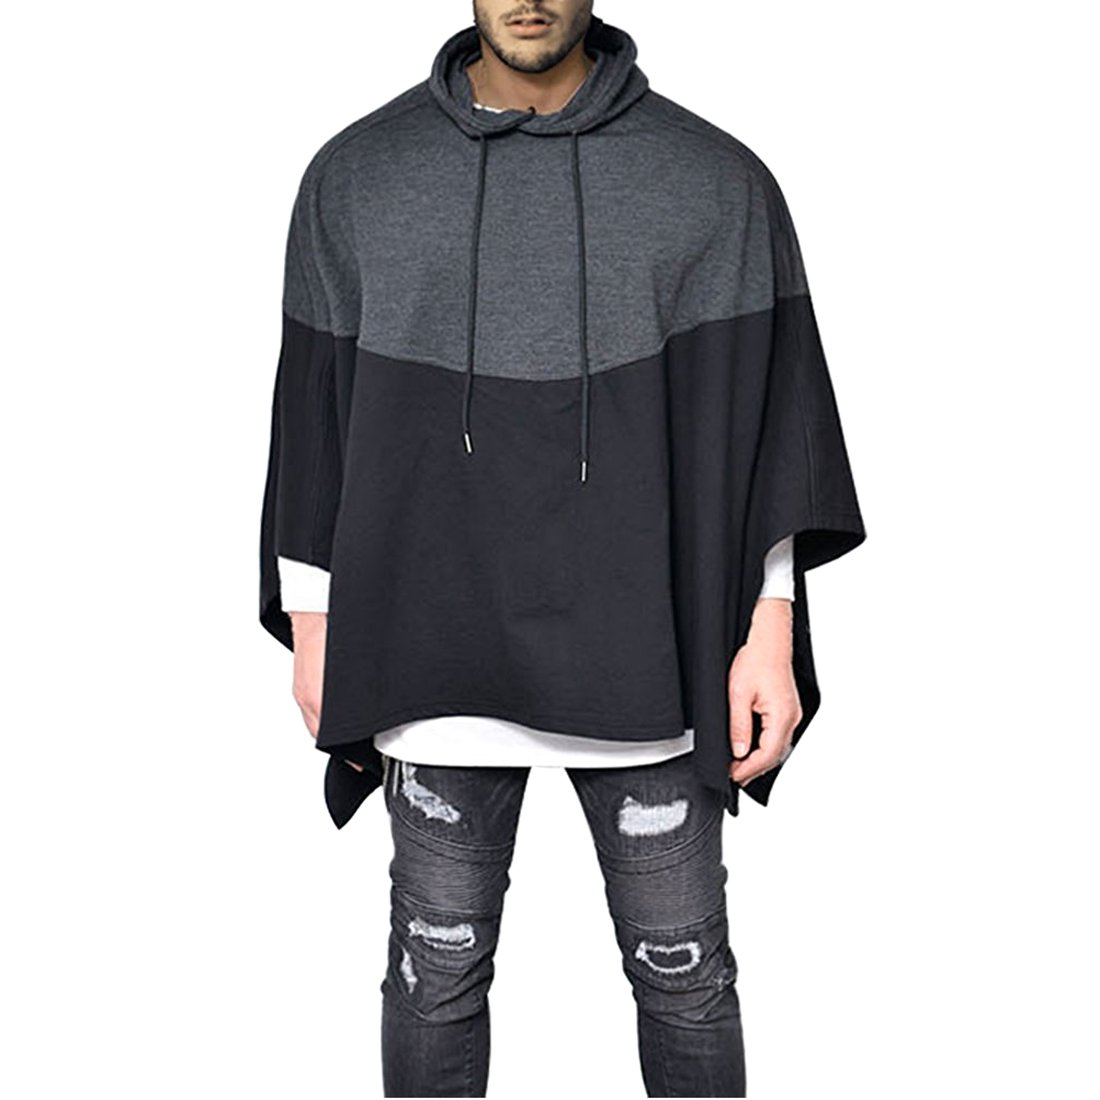 Mens Irregular Loose Bat Sleeves Oversized Plus Size Hooded Poncho Cloaks Casual Pullover Hoodie Cape Coat Tops (US Medium(Tag L))